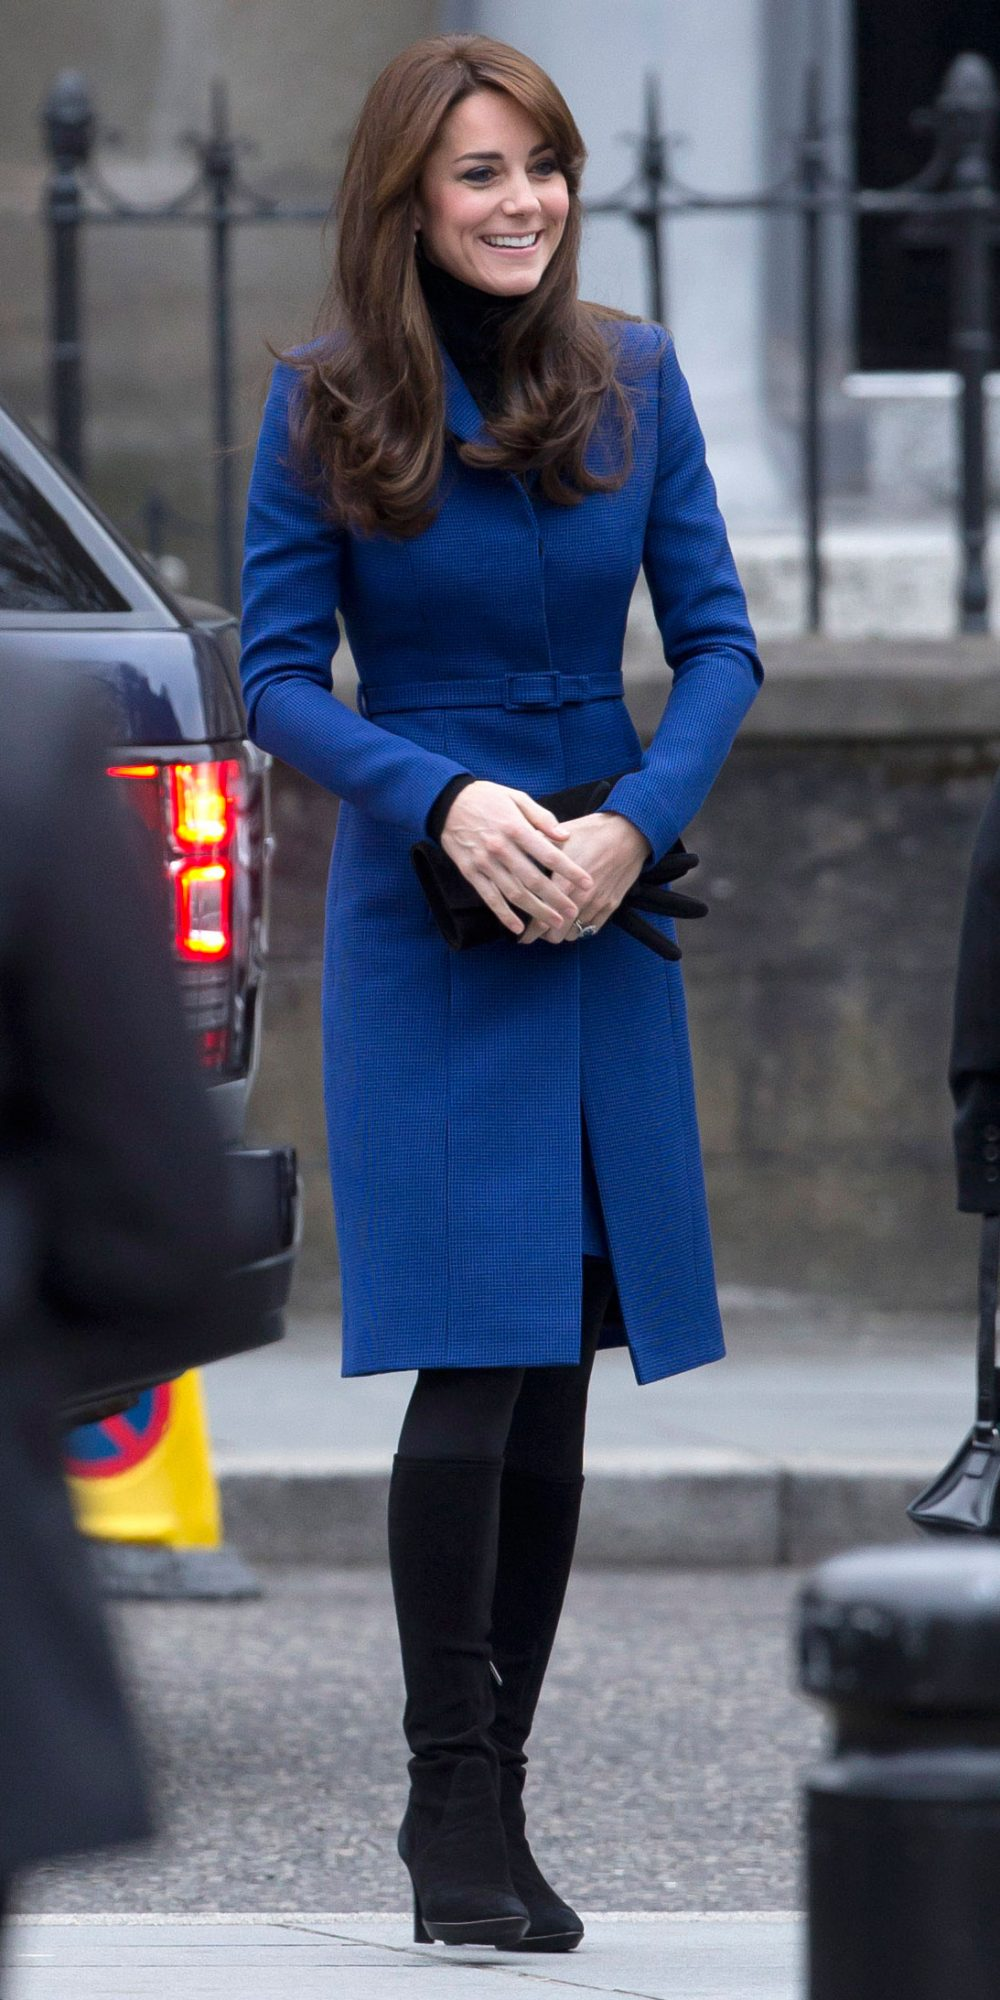 Kate Middleton Looks Cozy in a Fitted Blue Coat During Her Scotland Trip